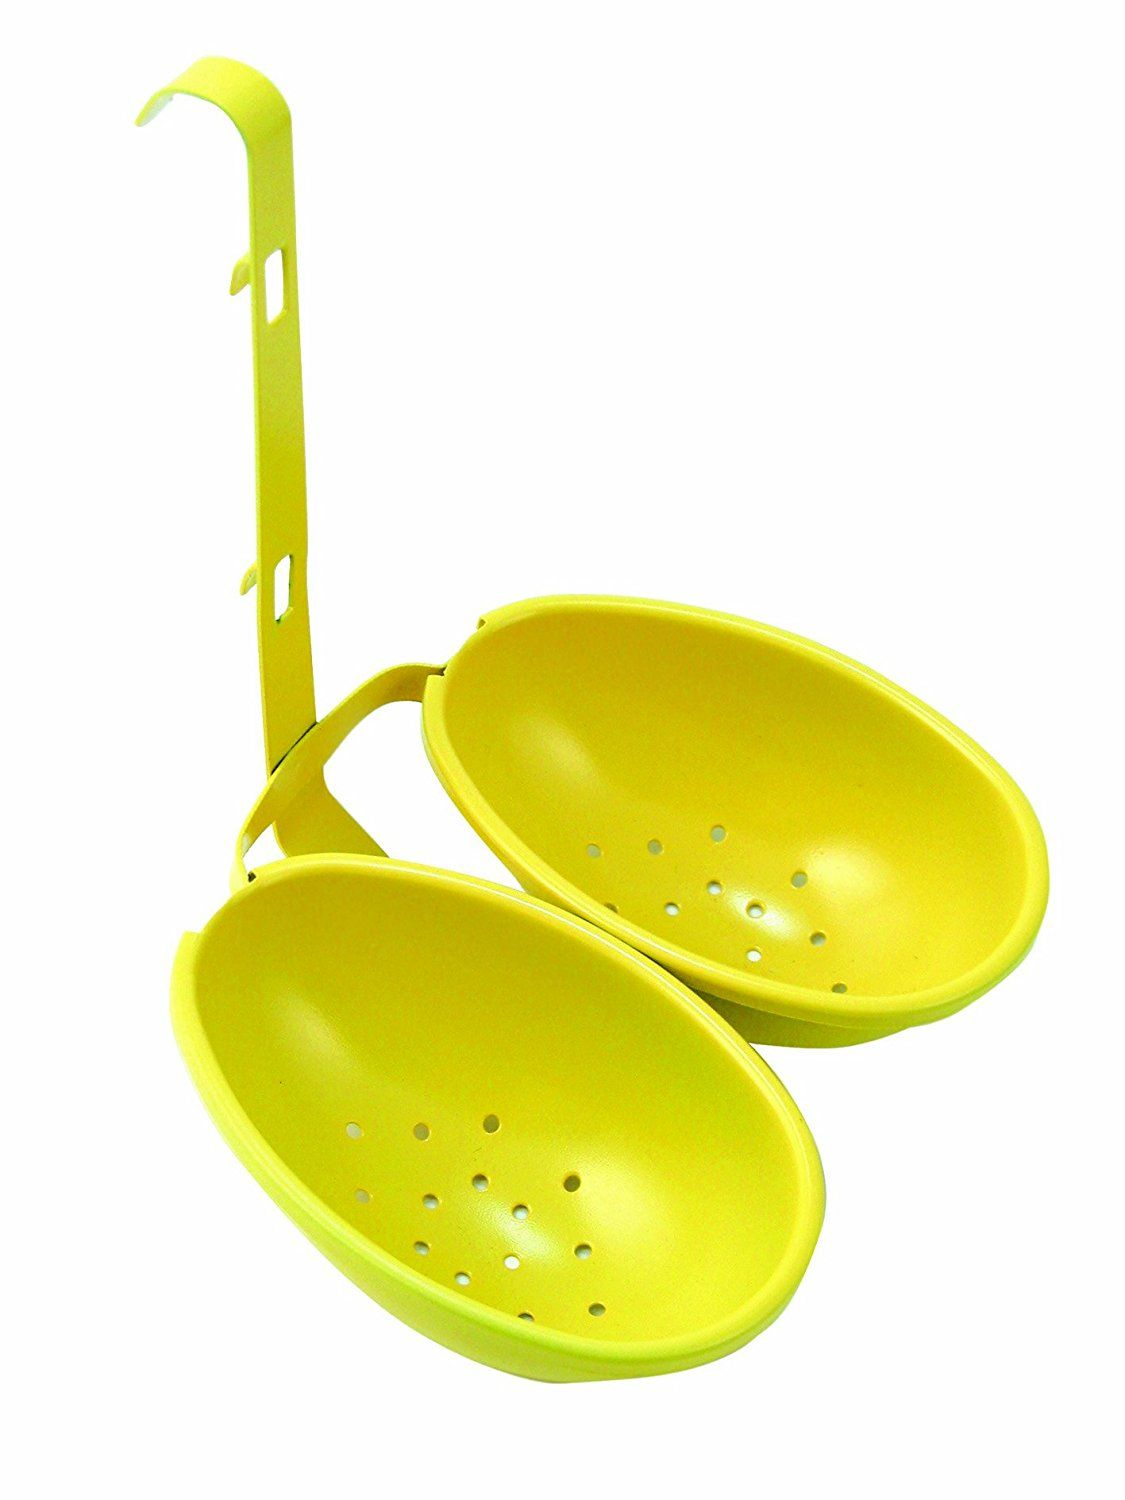 specialty kitchen stores windows eddingtons egg poacher double yellow tried it love click the image cookware